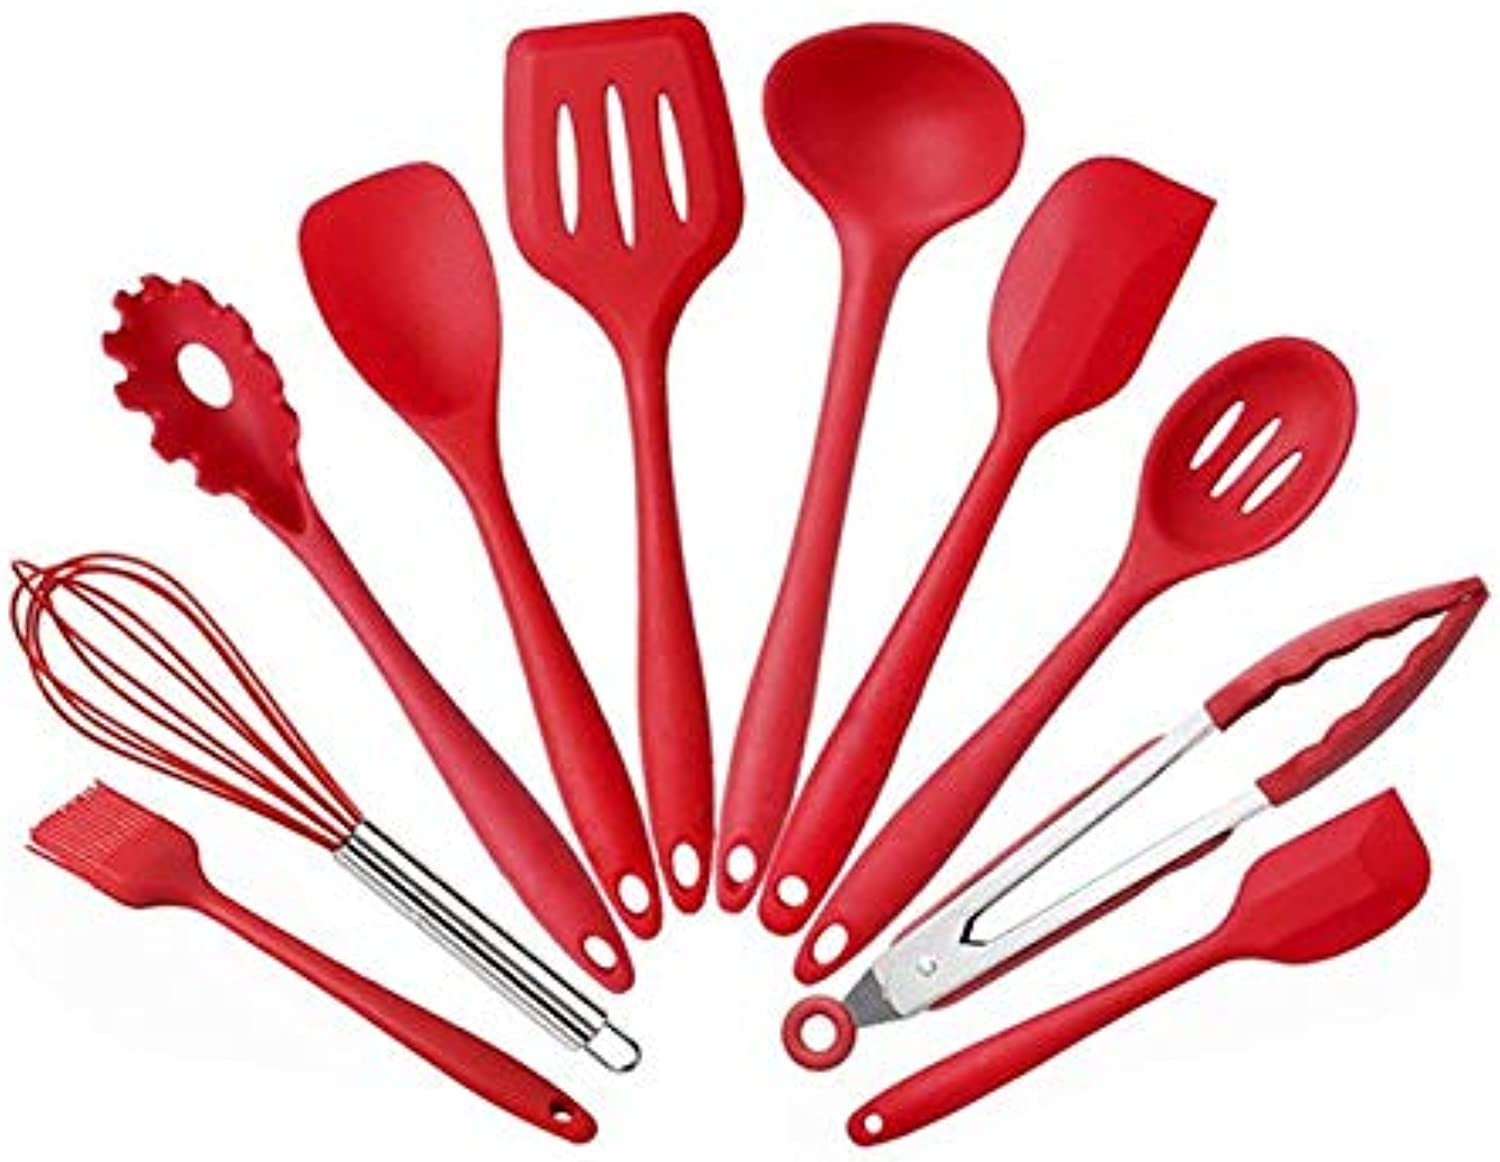 Zoomy Far 10PCS Set Silicone Spatula Nonstick Kitchen Utensil Fashion Cooking Tools Kit Soft Silicone Material High Temperature Resistant   Red